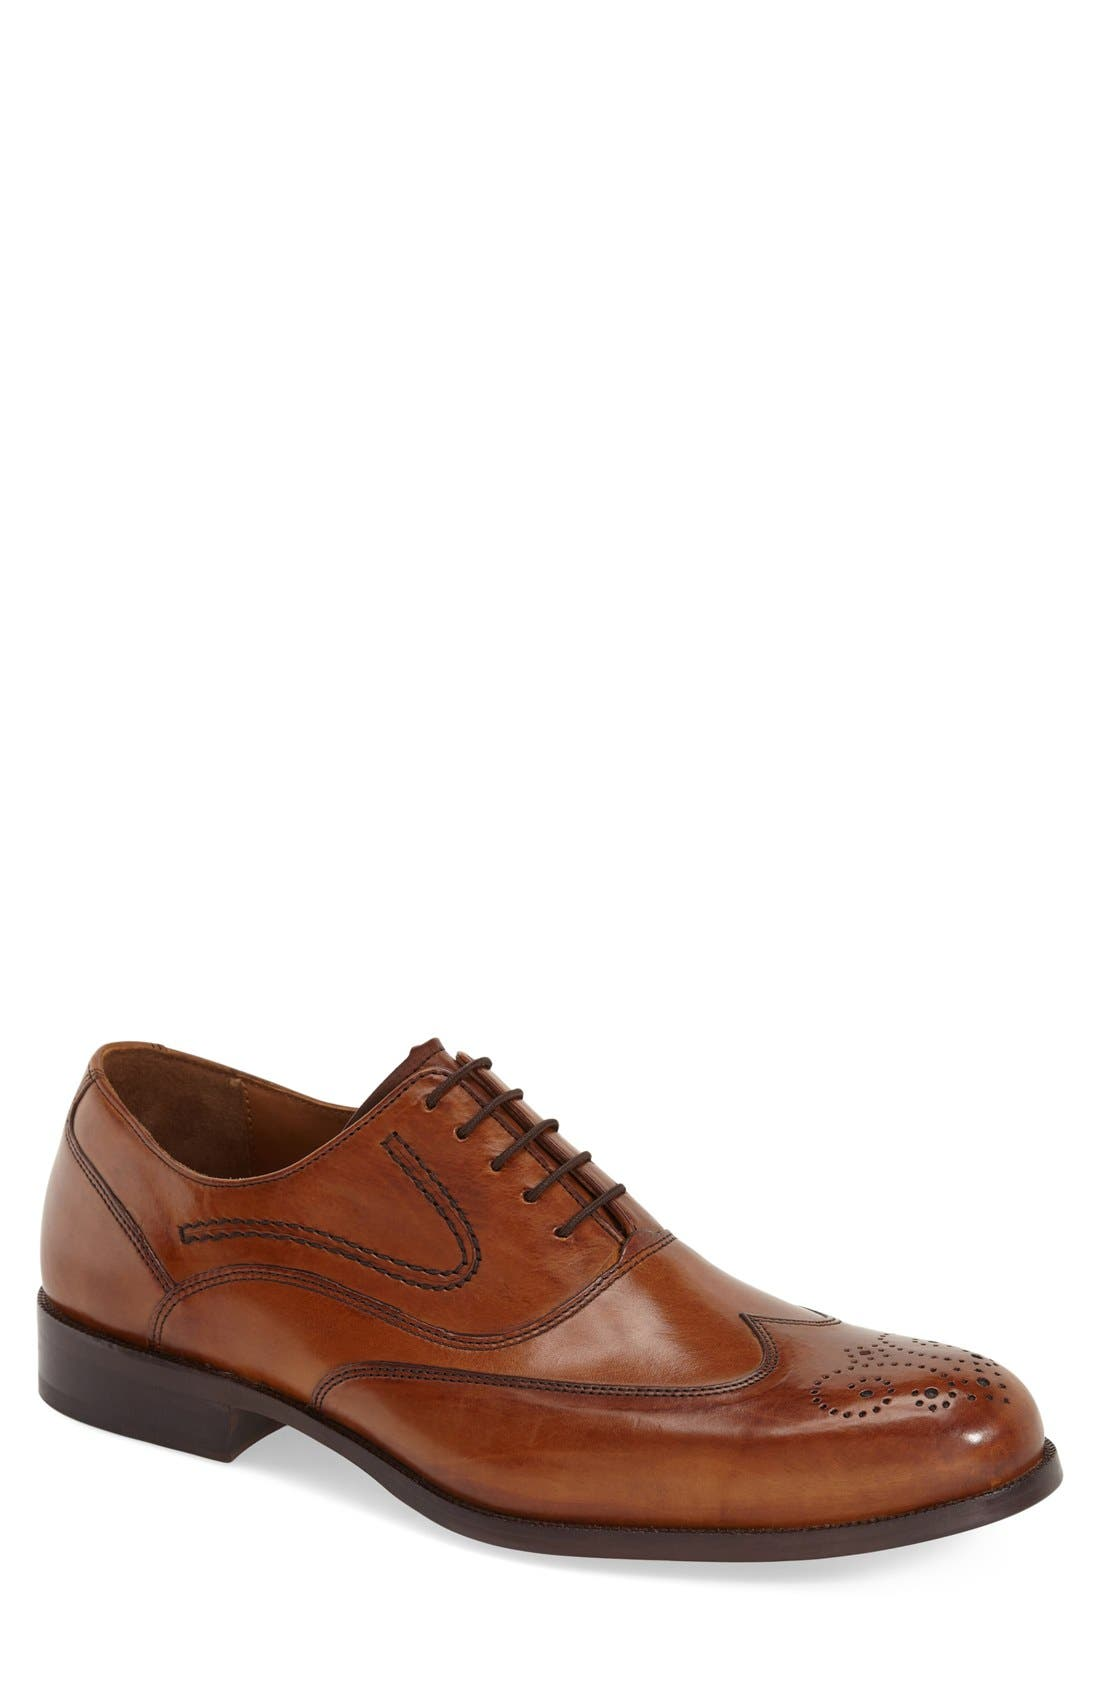 Main Image - Johnston & Murphy 'Stratton' Wingtip Oxford (Men)